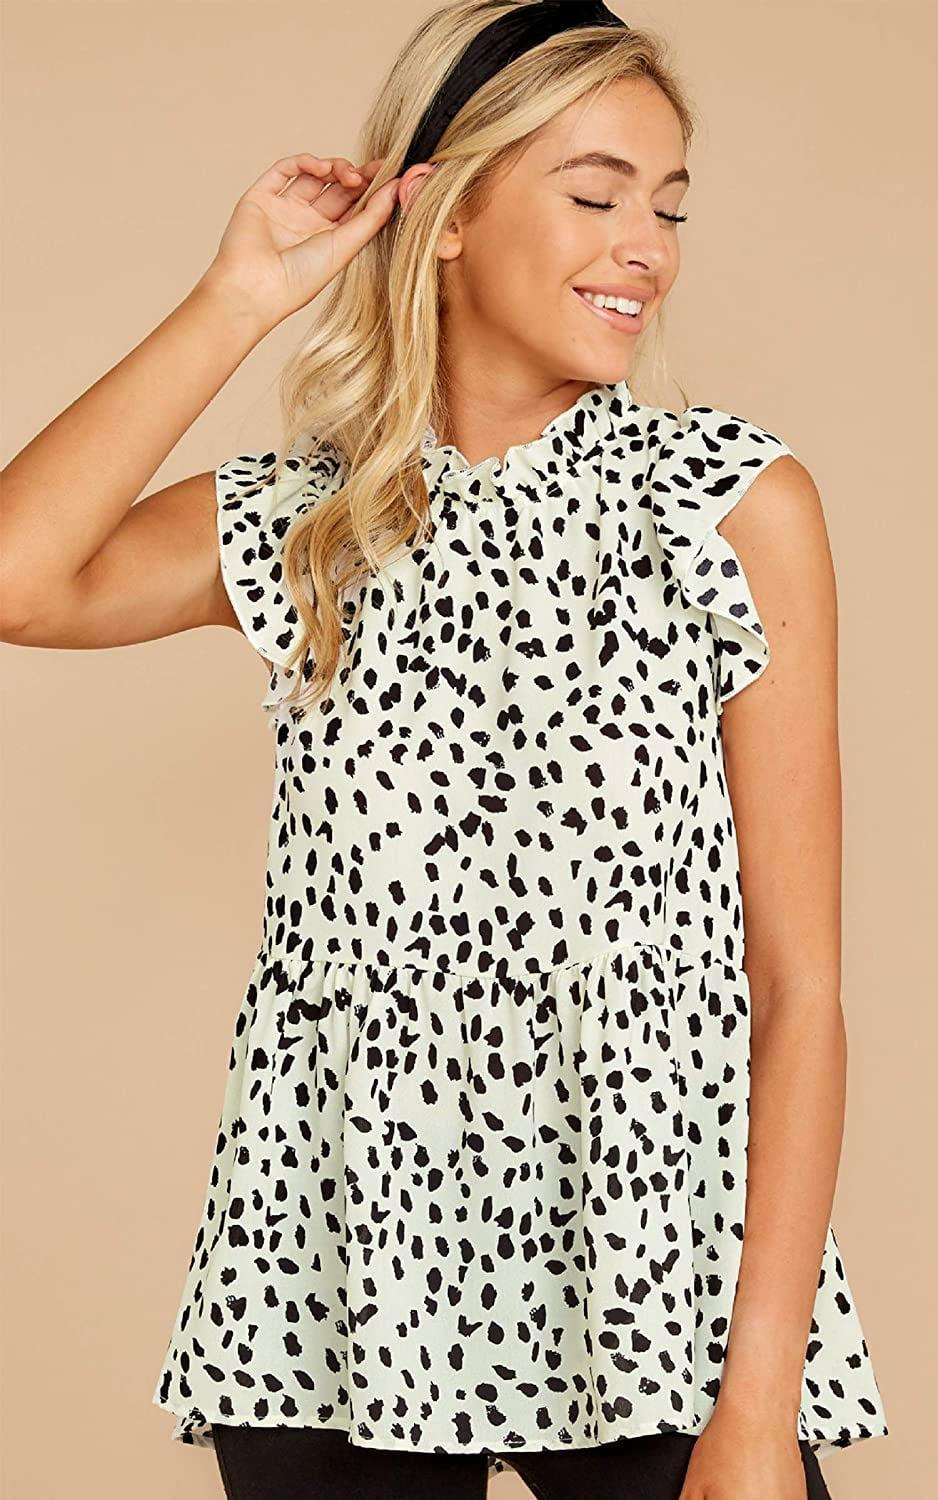 <p>From the office to afterwork drinks, this <span>Angashion Babydoll Shirt</span> ($20 - $26) will stylishly transition into the night. Wear it with pants to make it even more polished.</p>